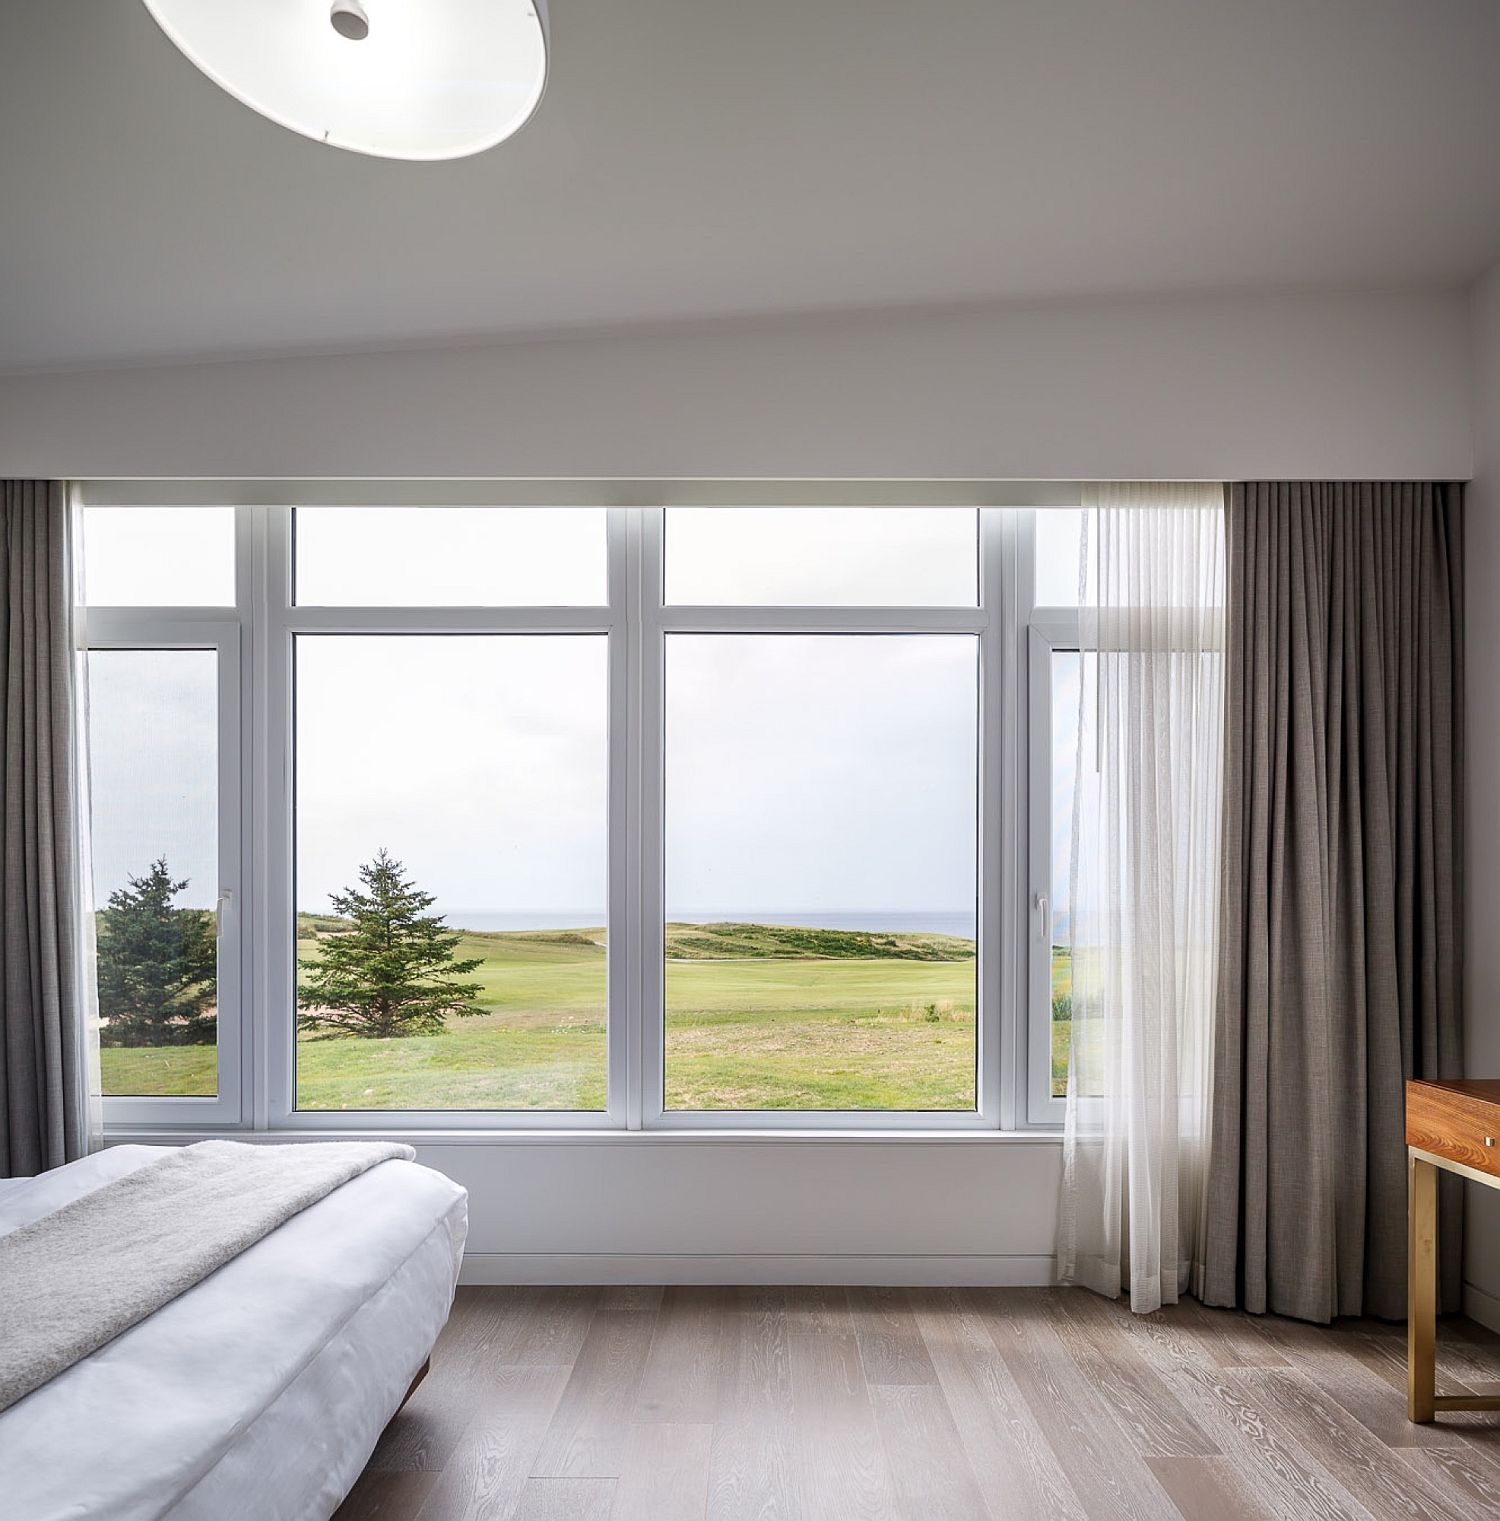 Ocean-and-golf-course-views-are-rolled-into-one-at-the-Cabot-Links